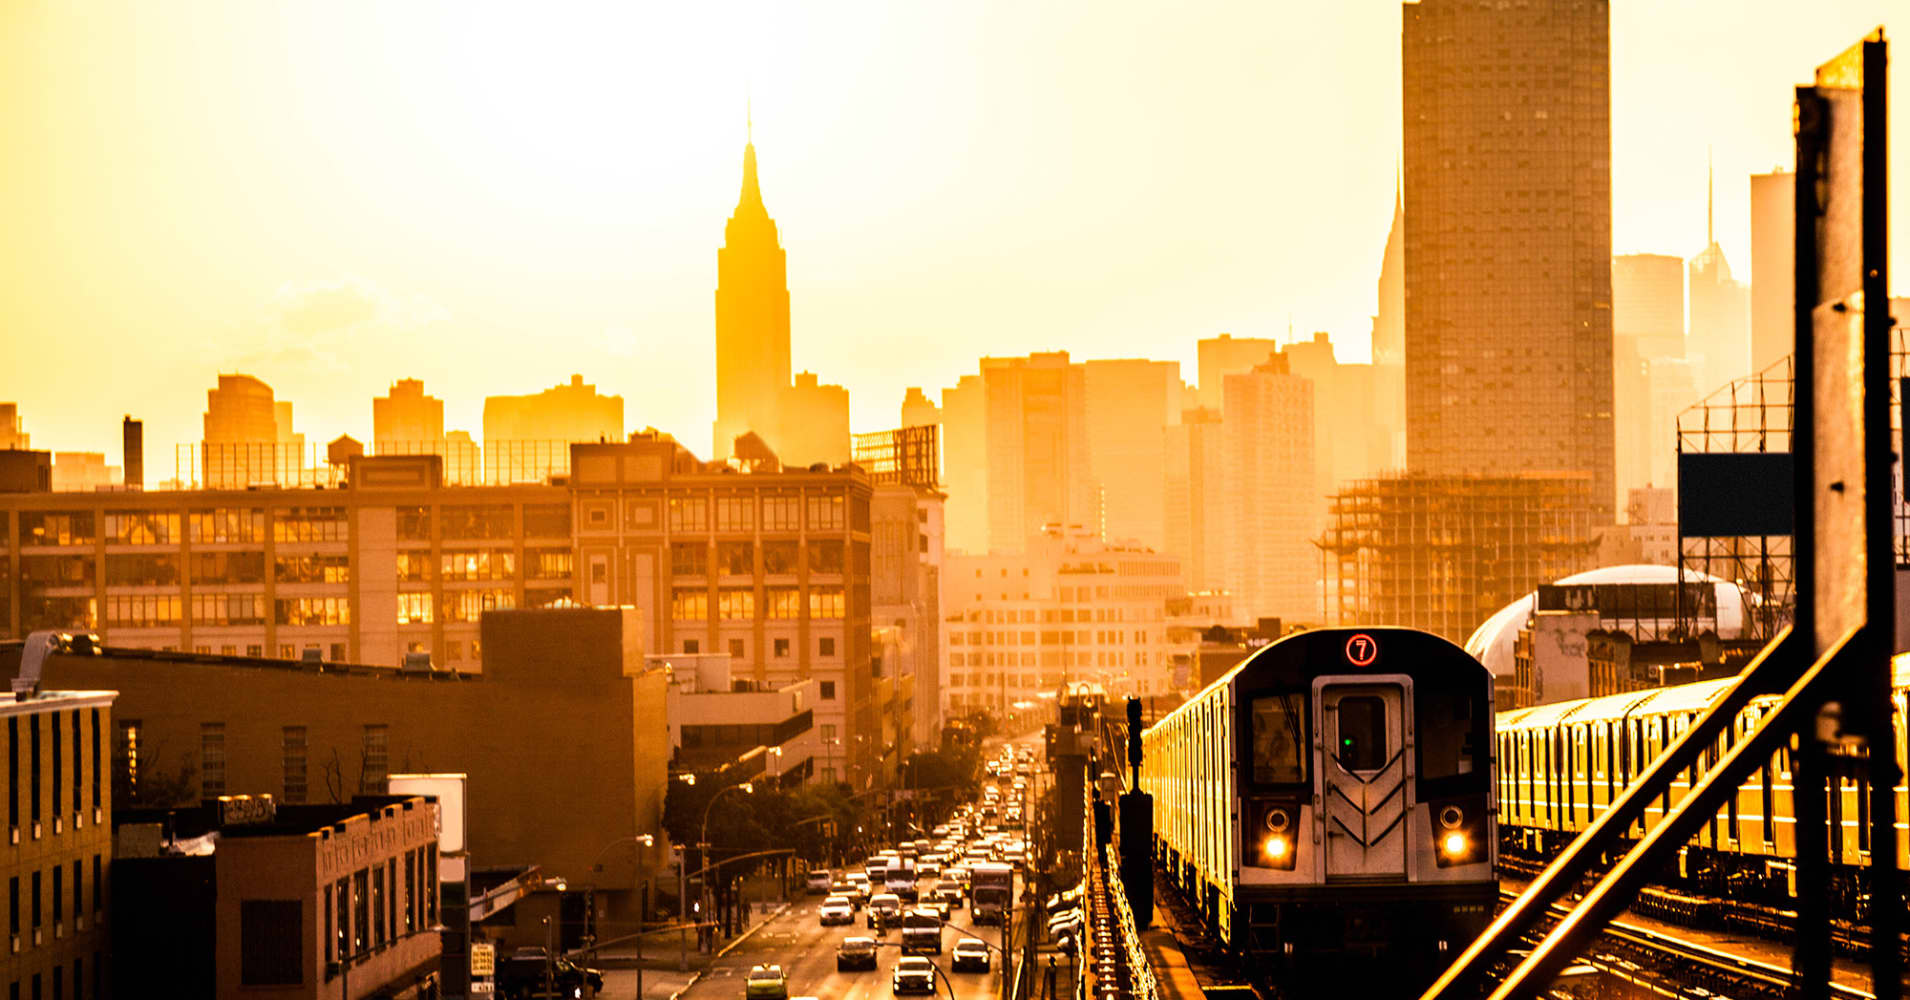 Sunset over New York skyline, on the subway overground train station.